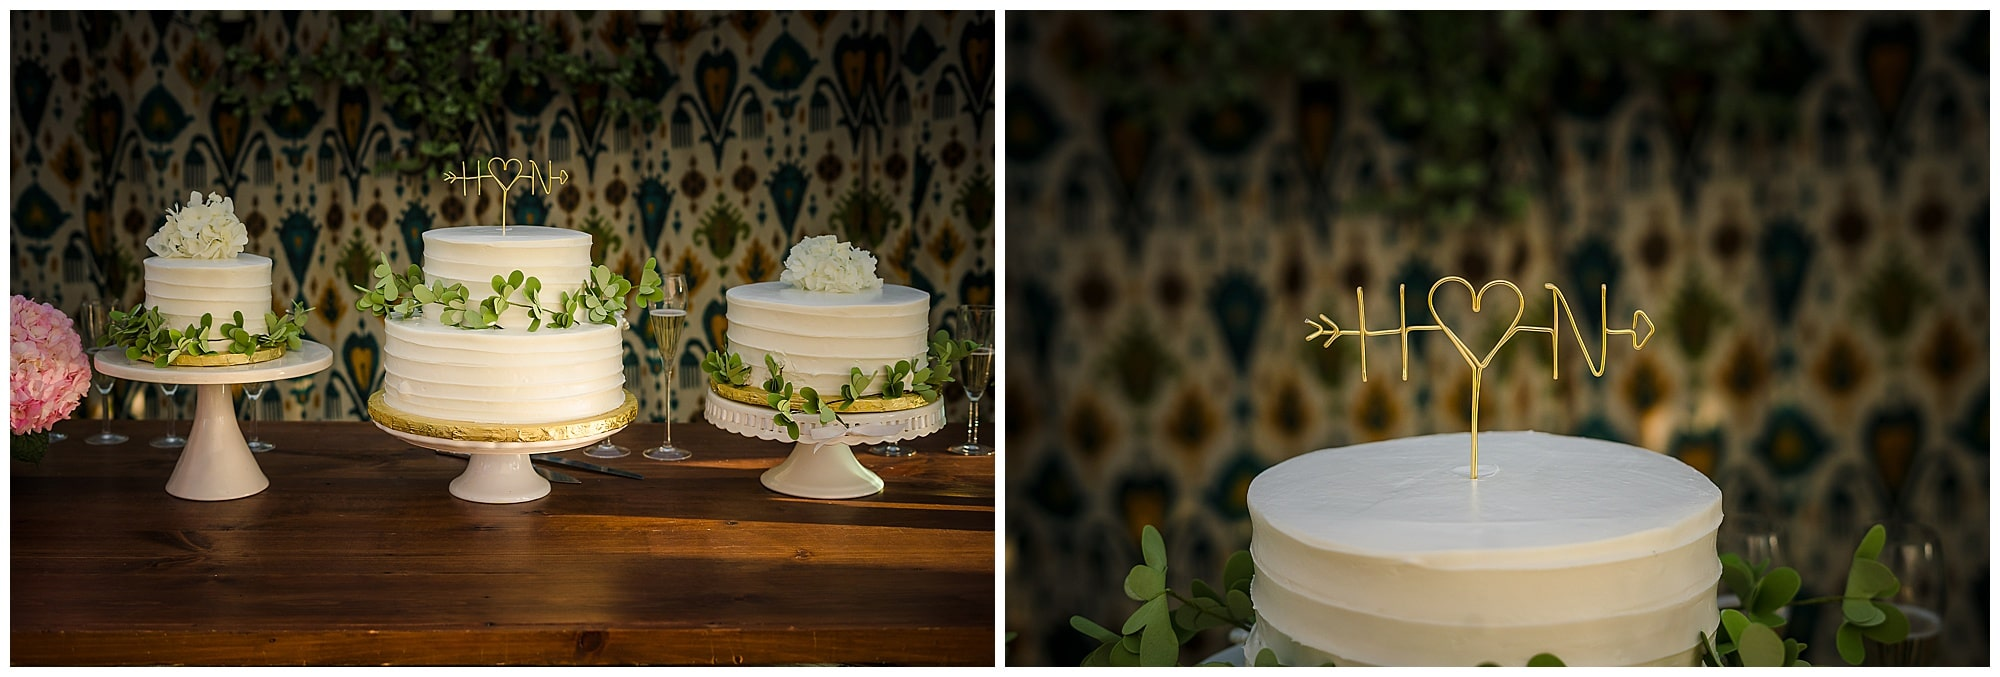 rustic Louisiana wedding wedding cake